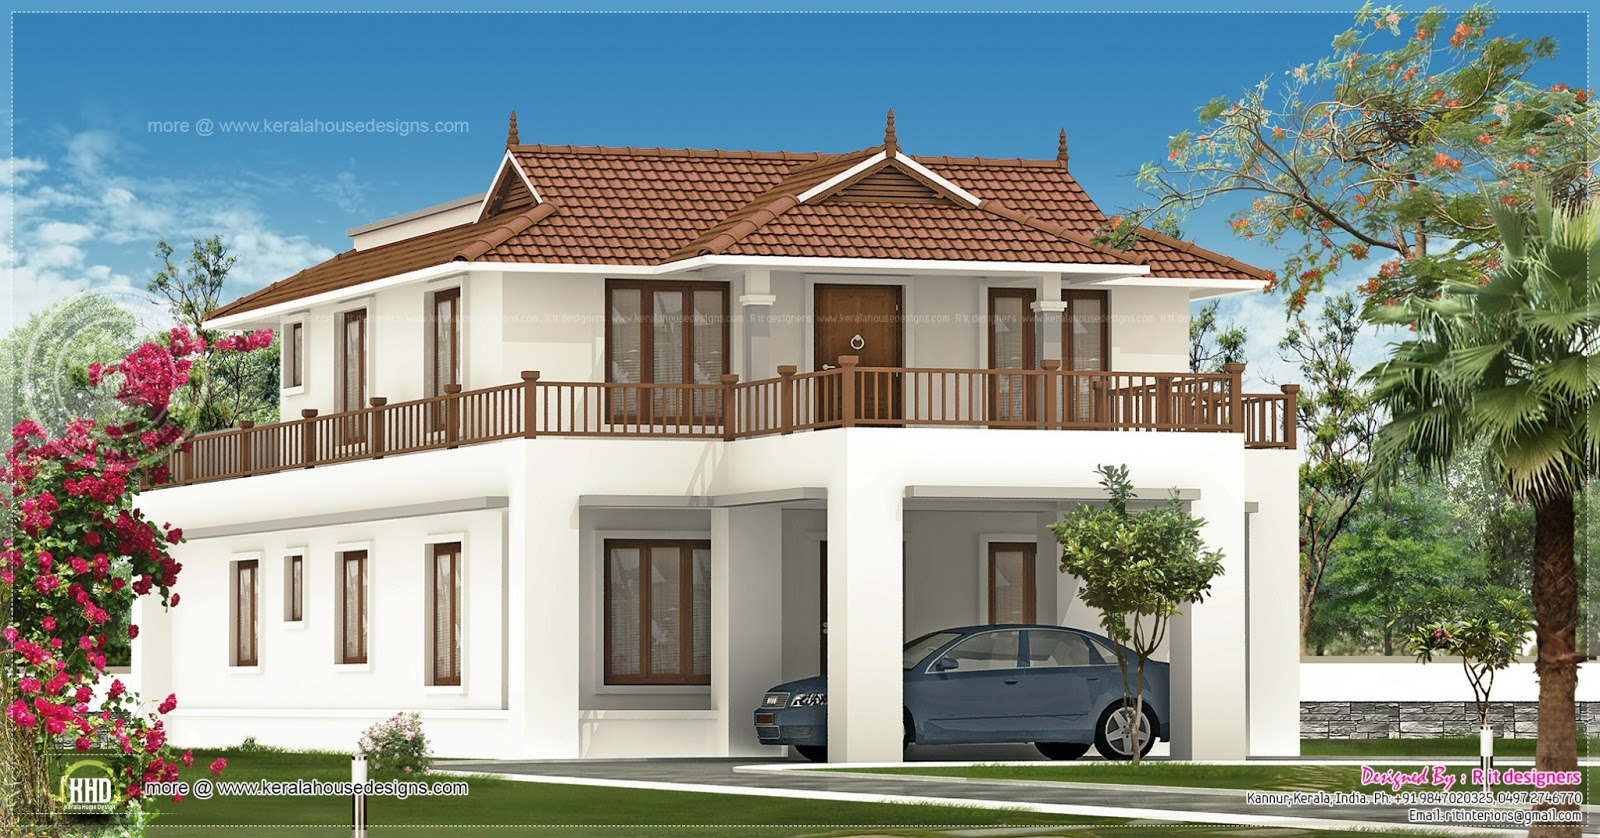 2820 square feet house exterior design home kerala plans for Home color design outside